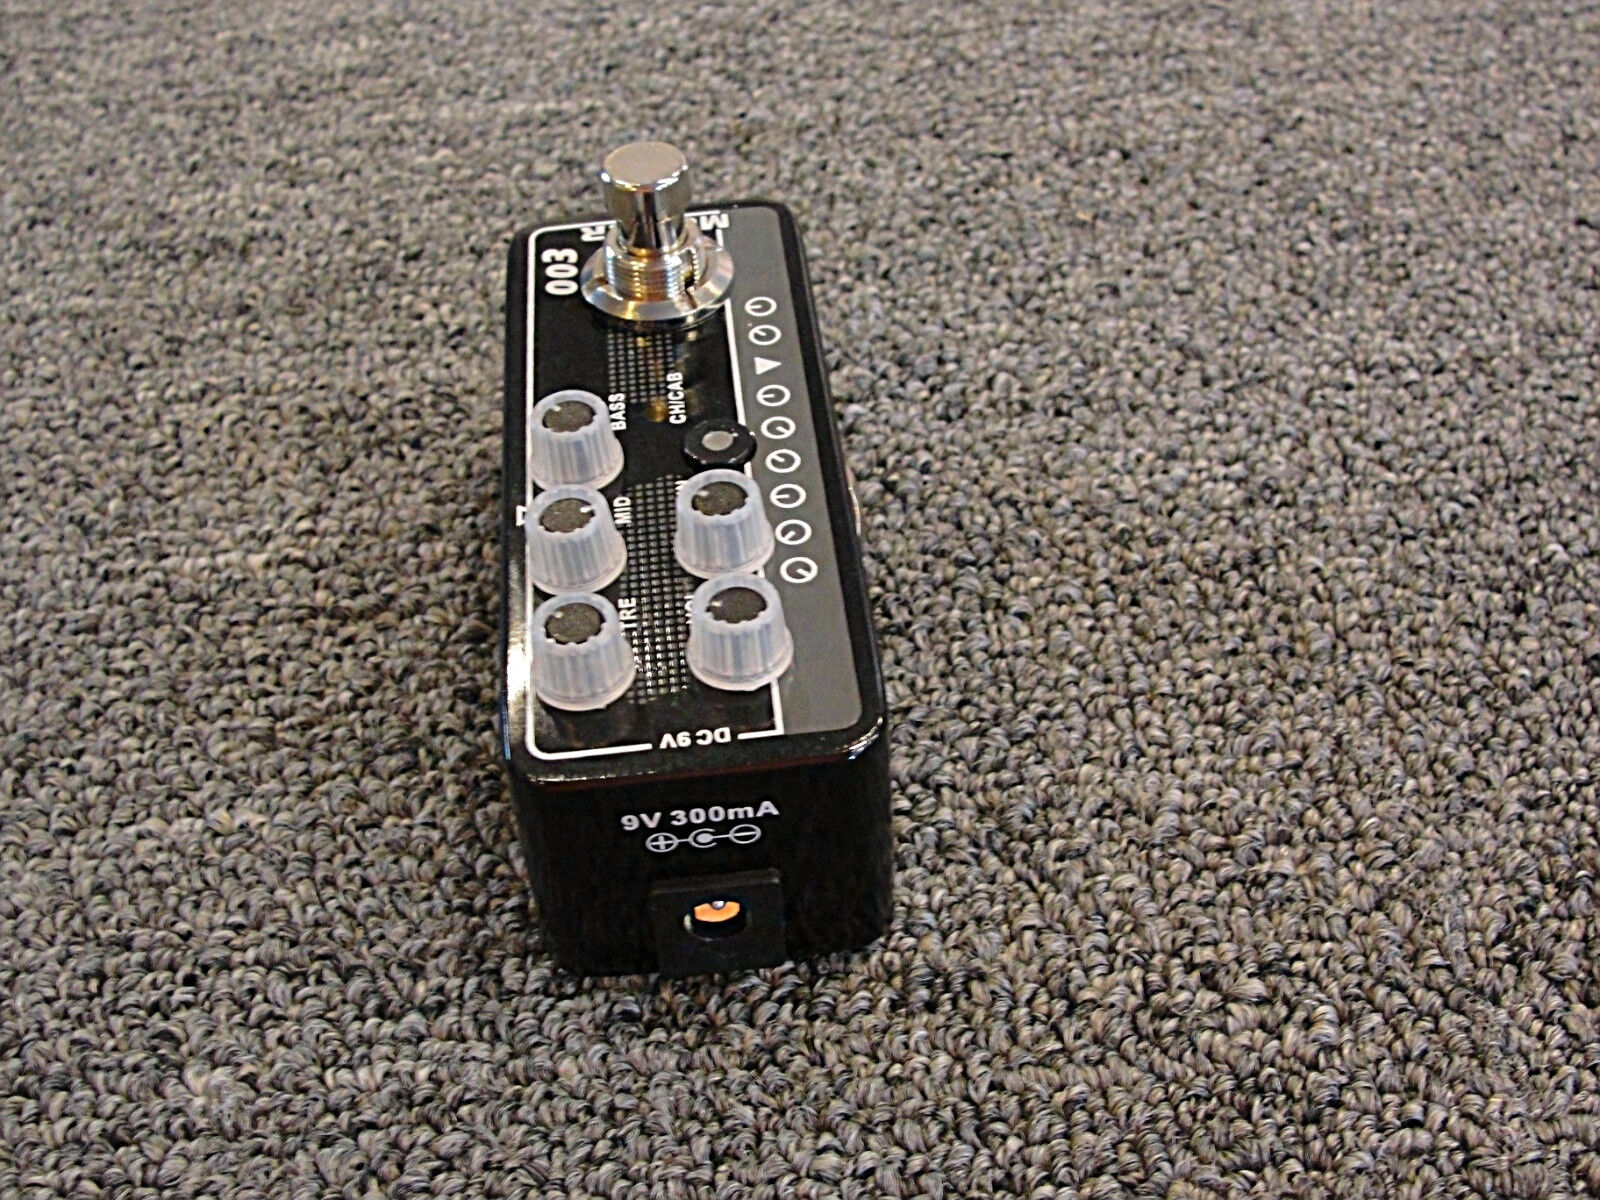 Mooer Micro Preamp 003 Power Zone Guitar Effects Pedal Ebay 002 Uk Gold 900 Based On Marshall Jcm900